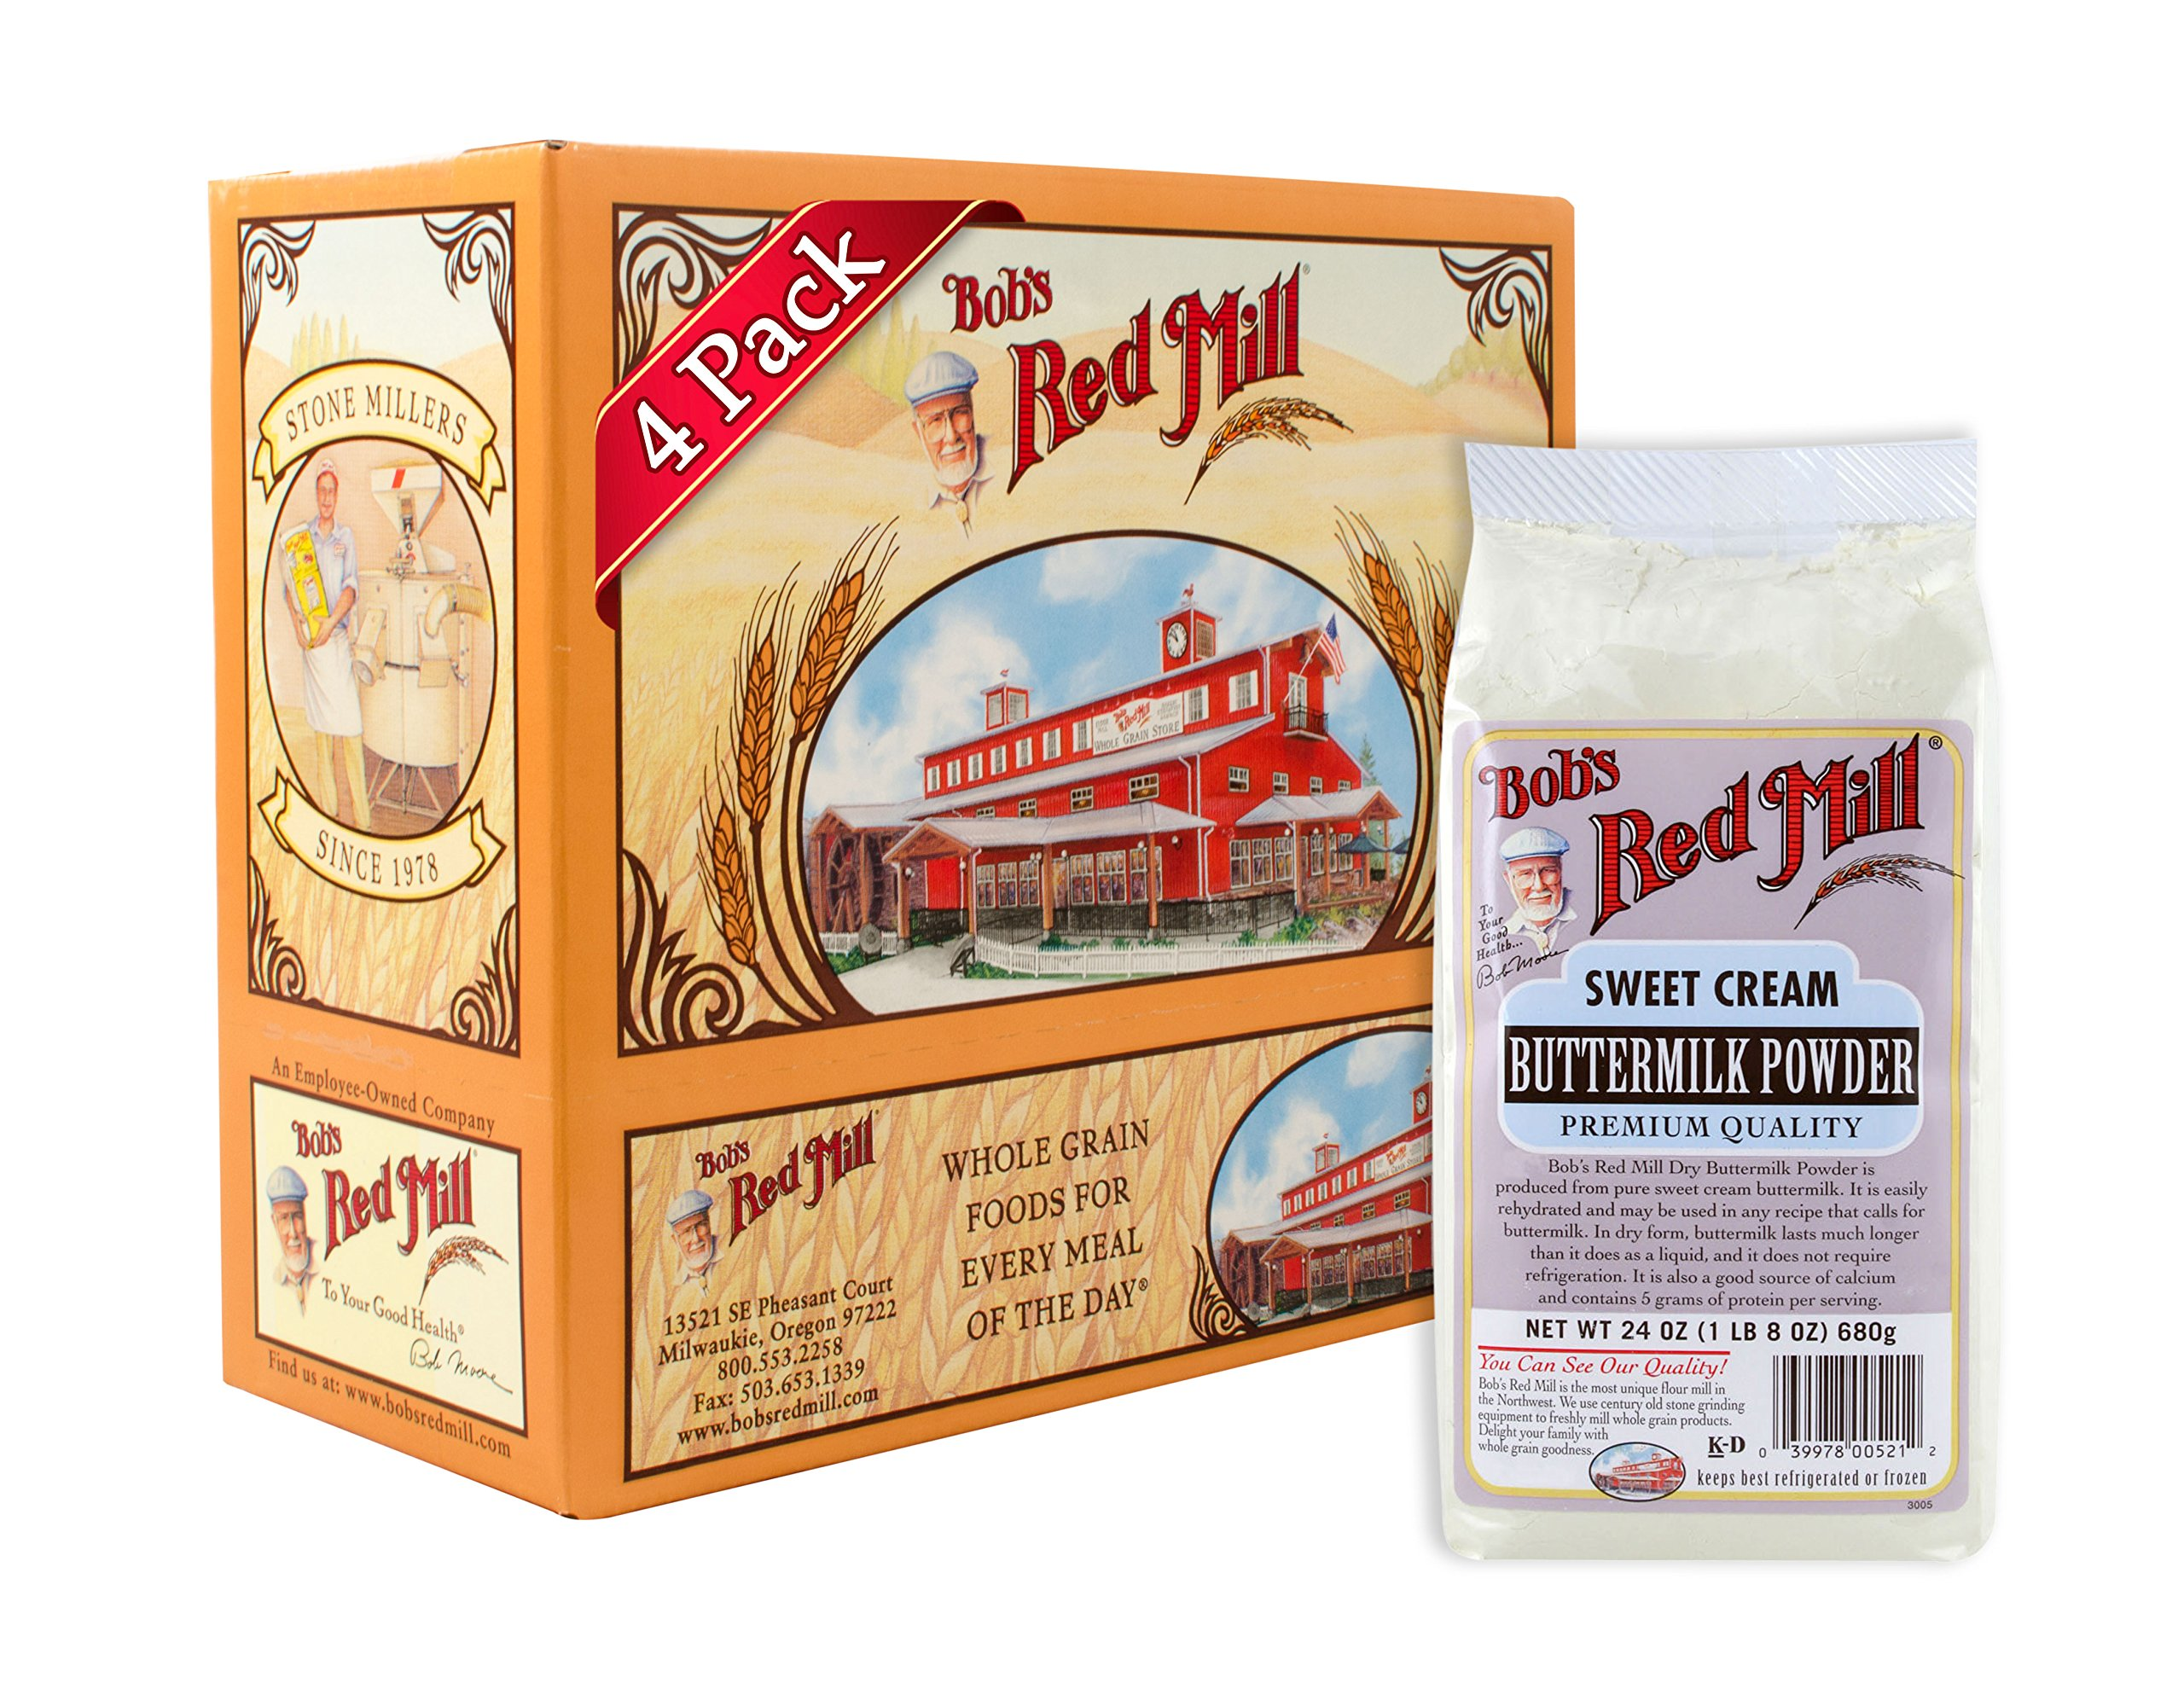 Bob's Red Mill Milk Powder Buttermilk, 24 Ounce Packages (Pack of 4) by Bob's Red Mill (Image #1)